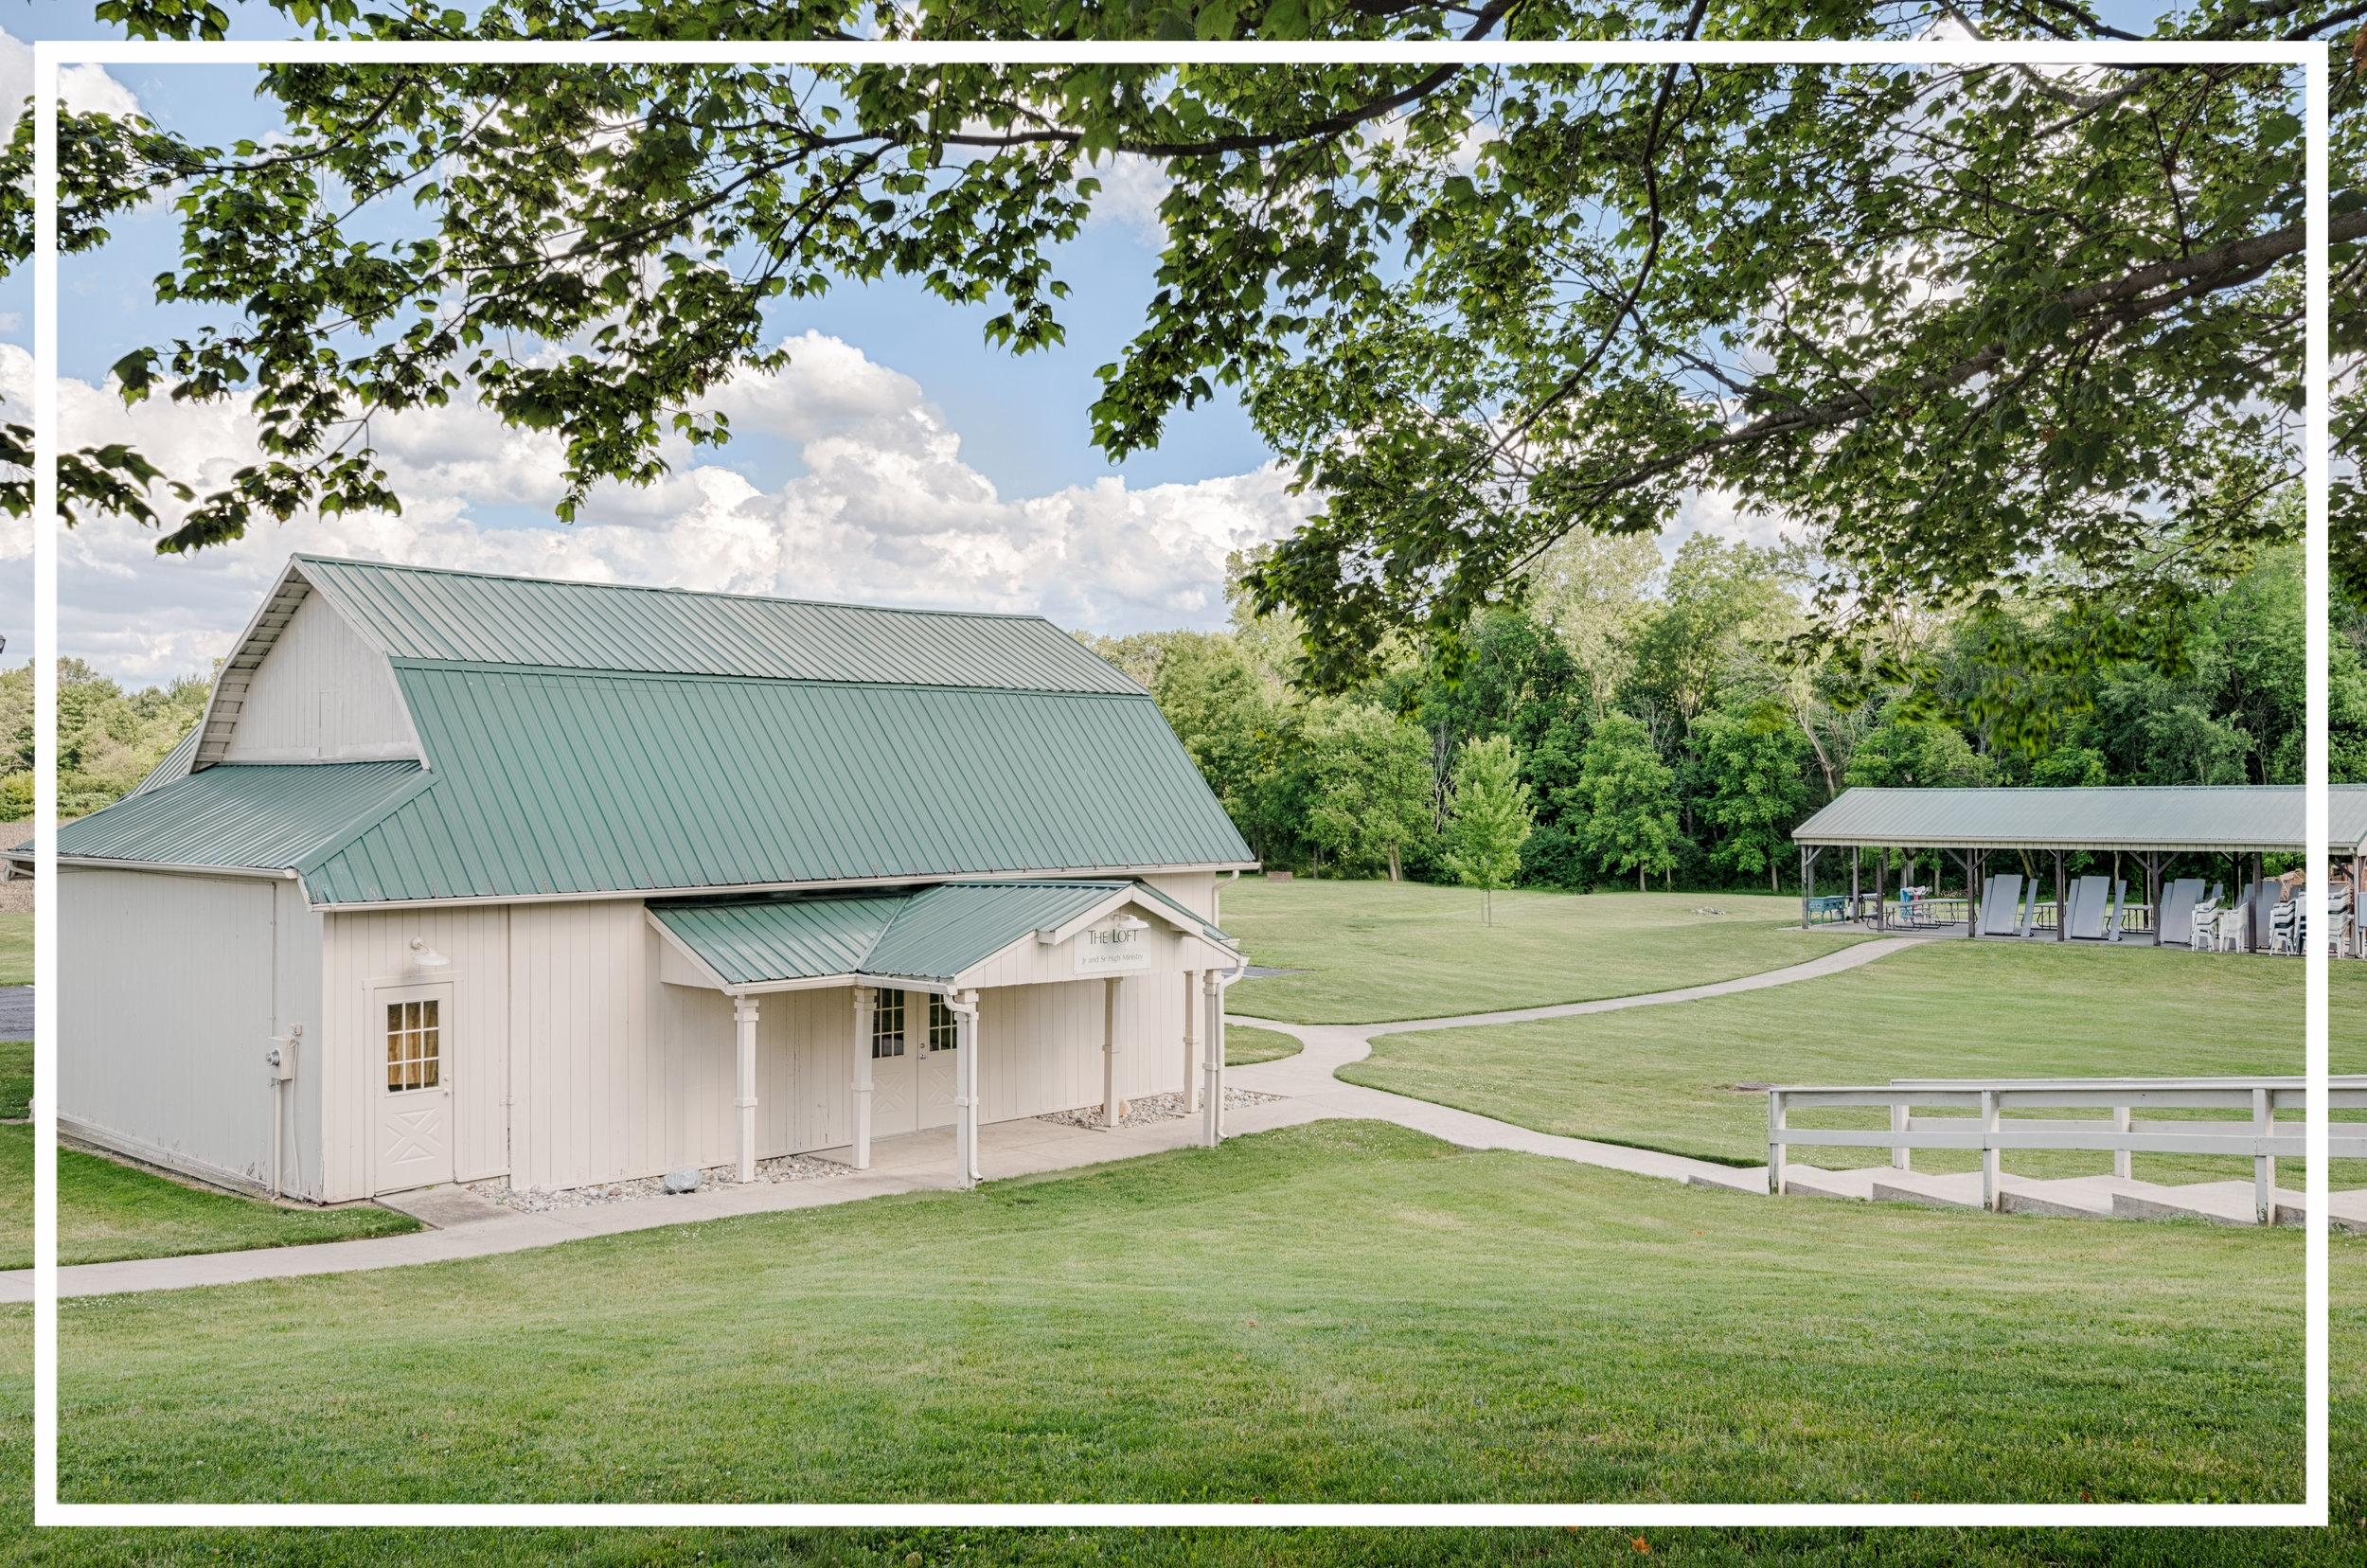 The Loft - The Loft is where the youth (grades 6-12) meet on Sunday at 9:00 am for their Bible Fellowship groups as well as on Sunday night for youth group at 6:00 pm. The Loft is a converted-renovated barn which is located down and behind the Worship Center.